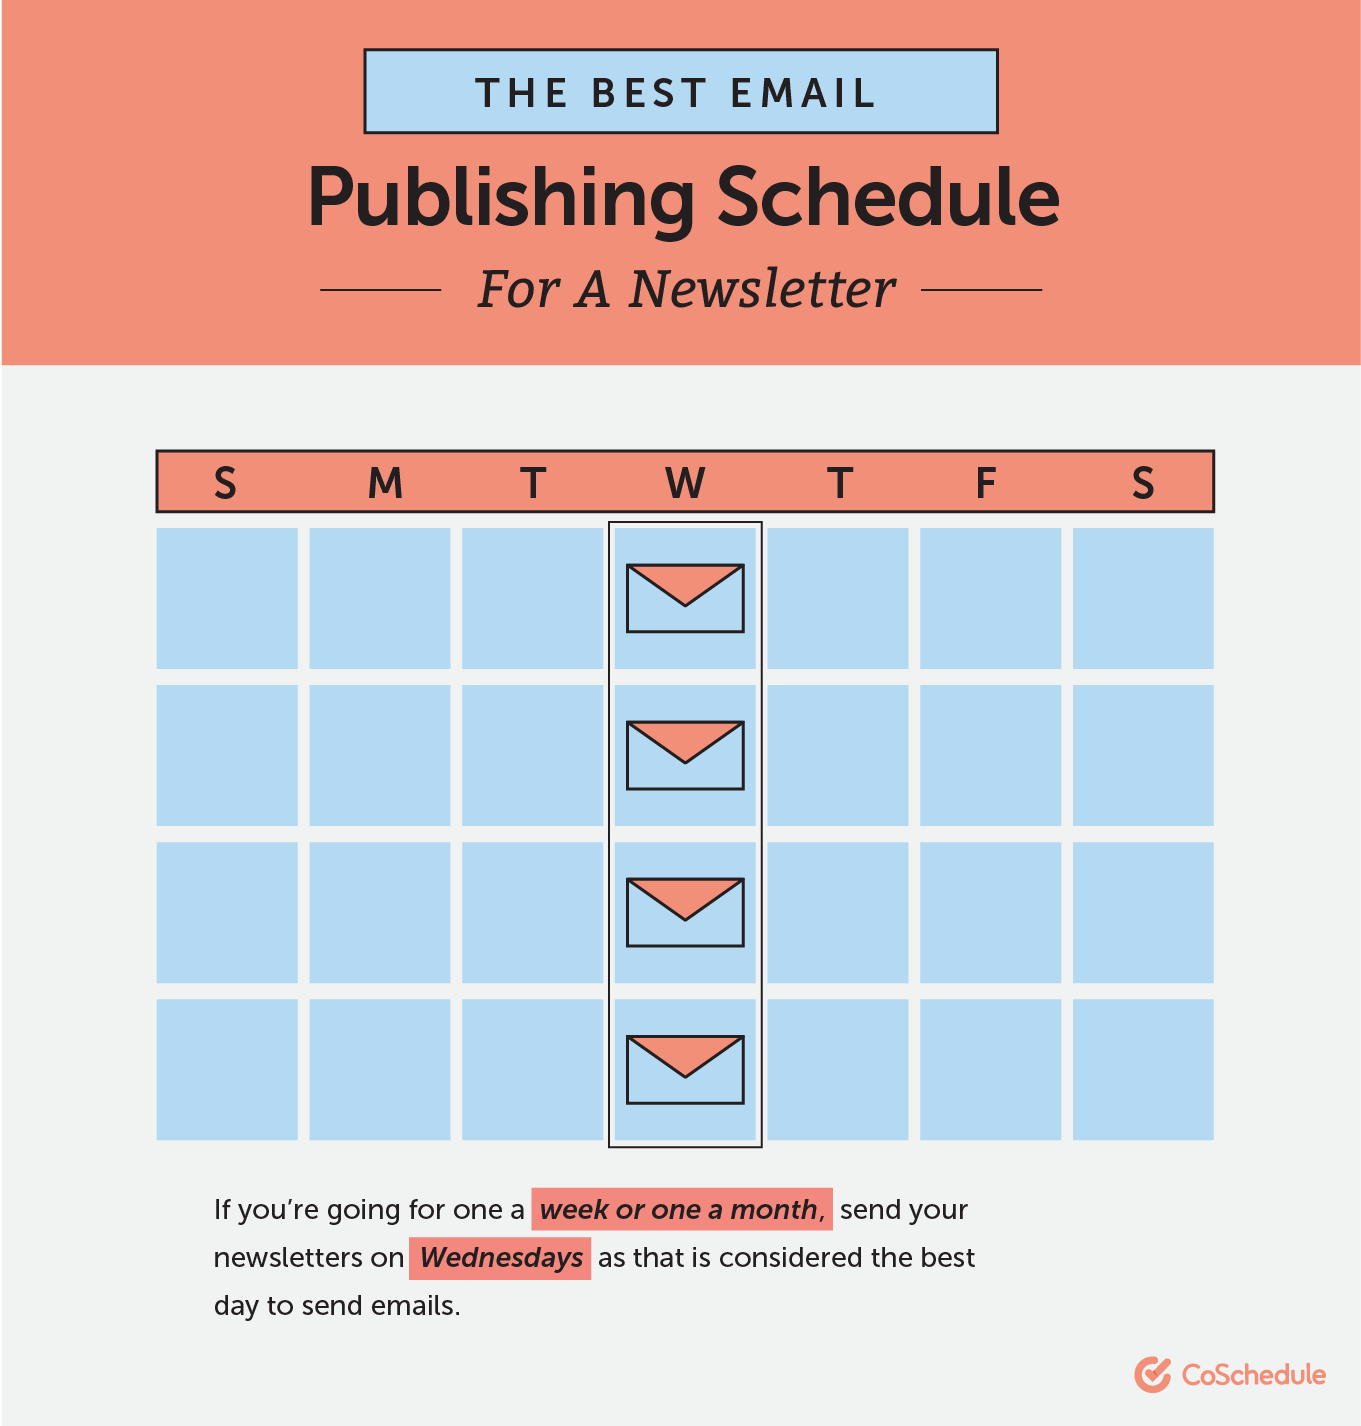 Publishing schedule for email newsletter